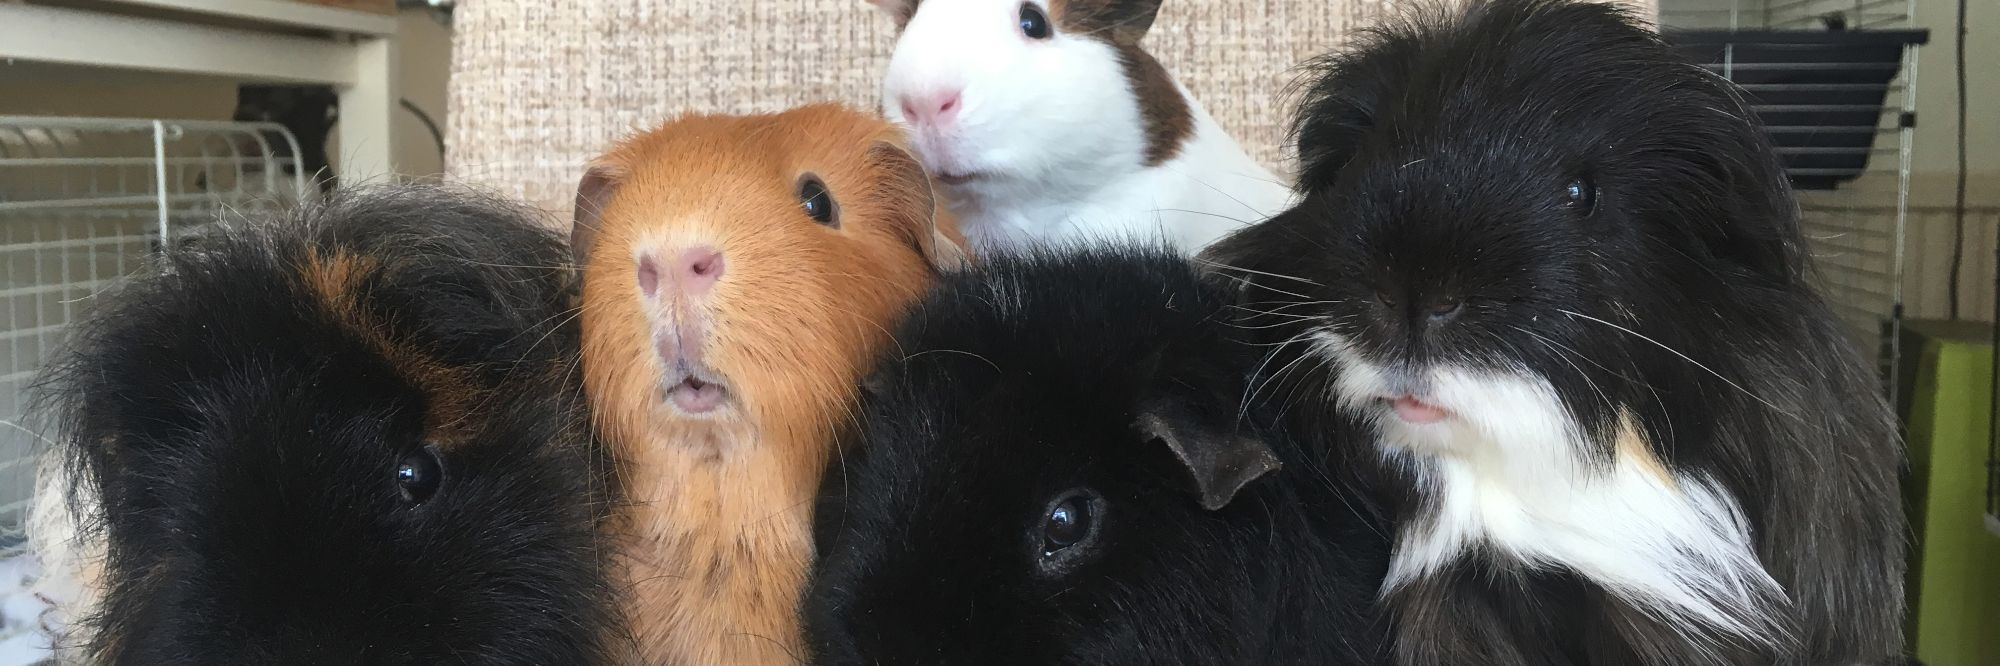 Sanctuary guinea pigs - homepage